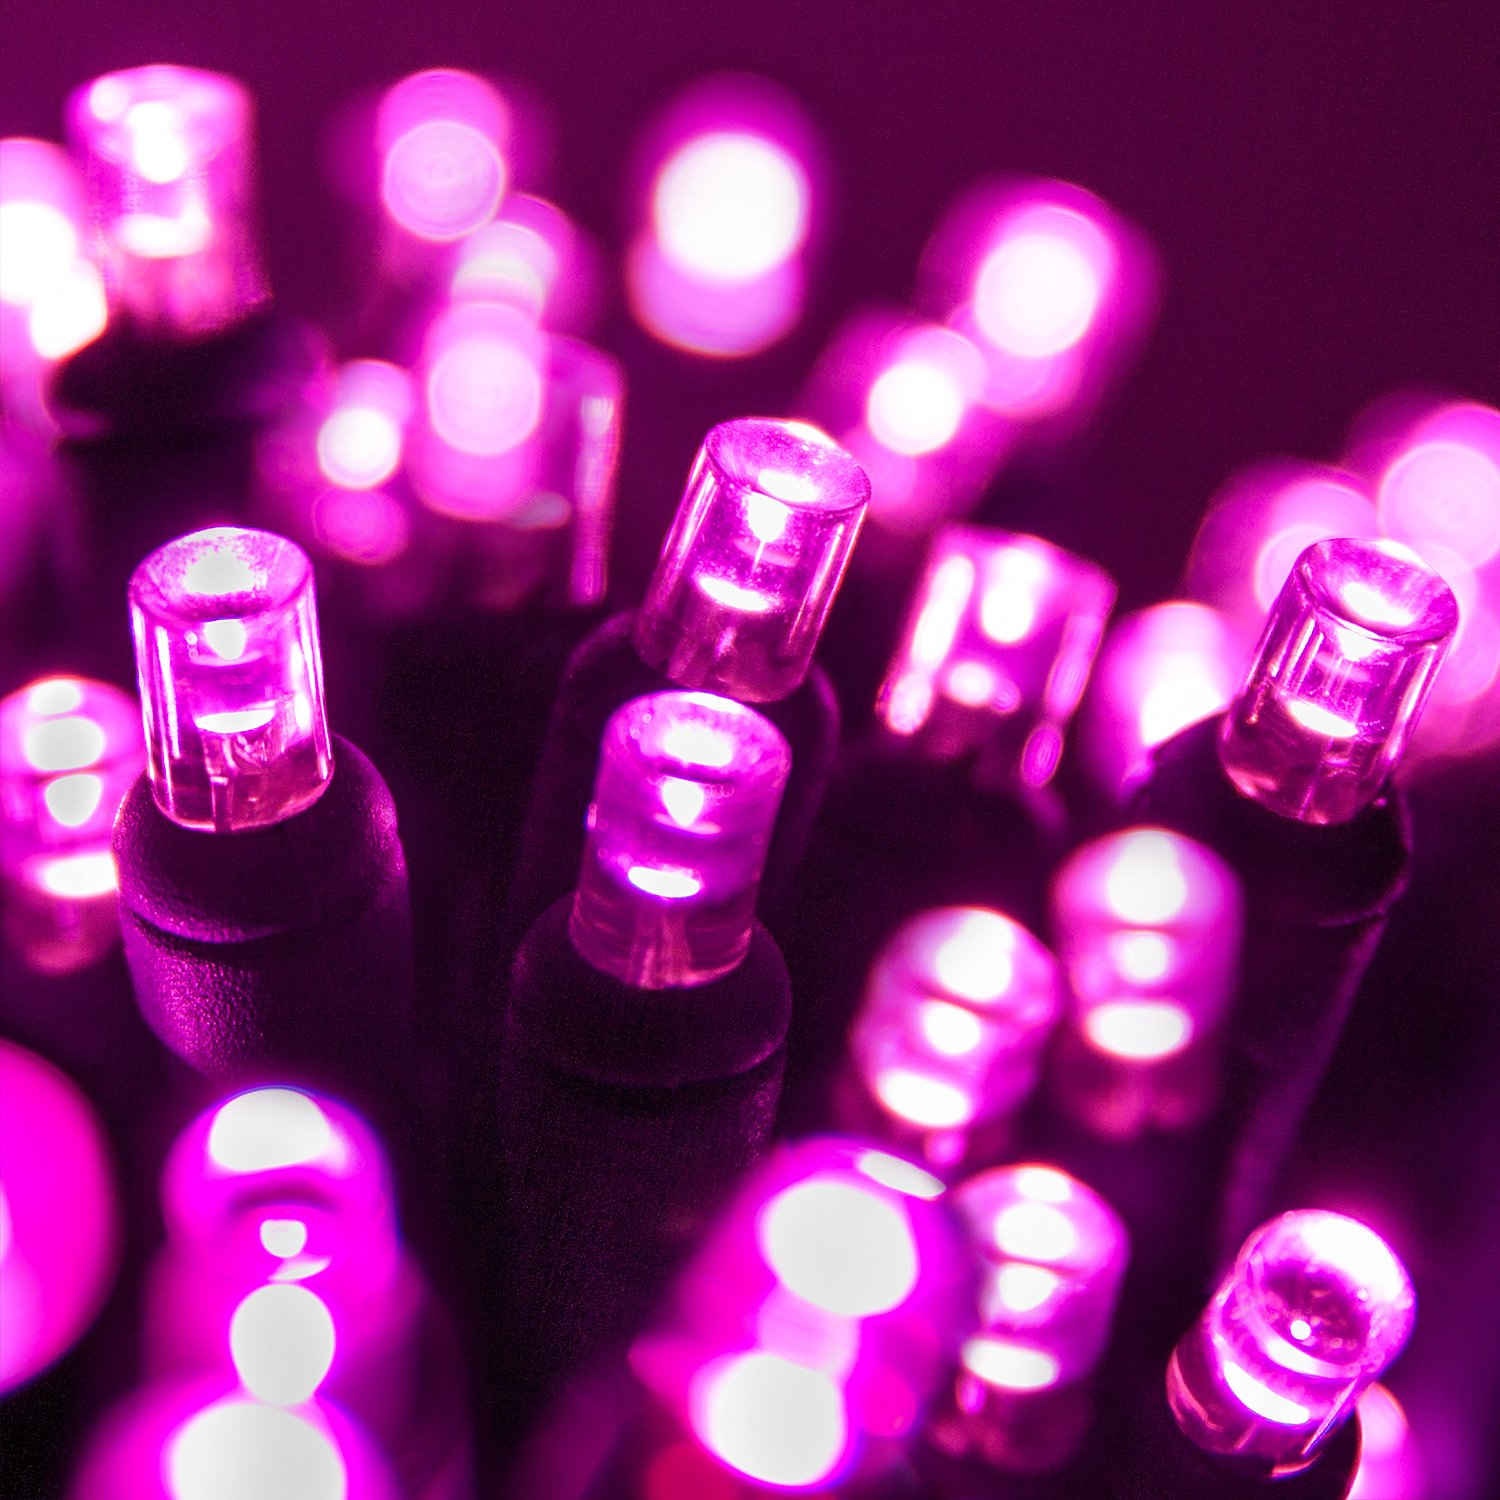 Pink Christmas Lights.5mm Led Wide Angle Pink Prelamped Light Set Green Wire 70 5mm Pink Led Christmas Lights 4 Spacing